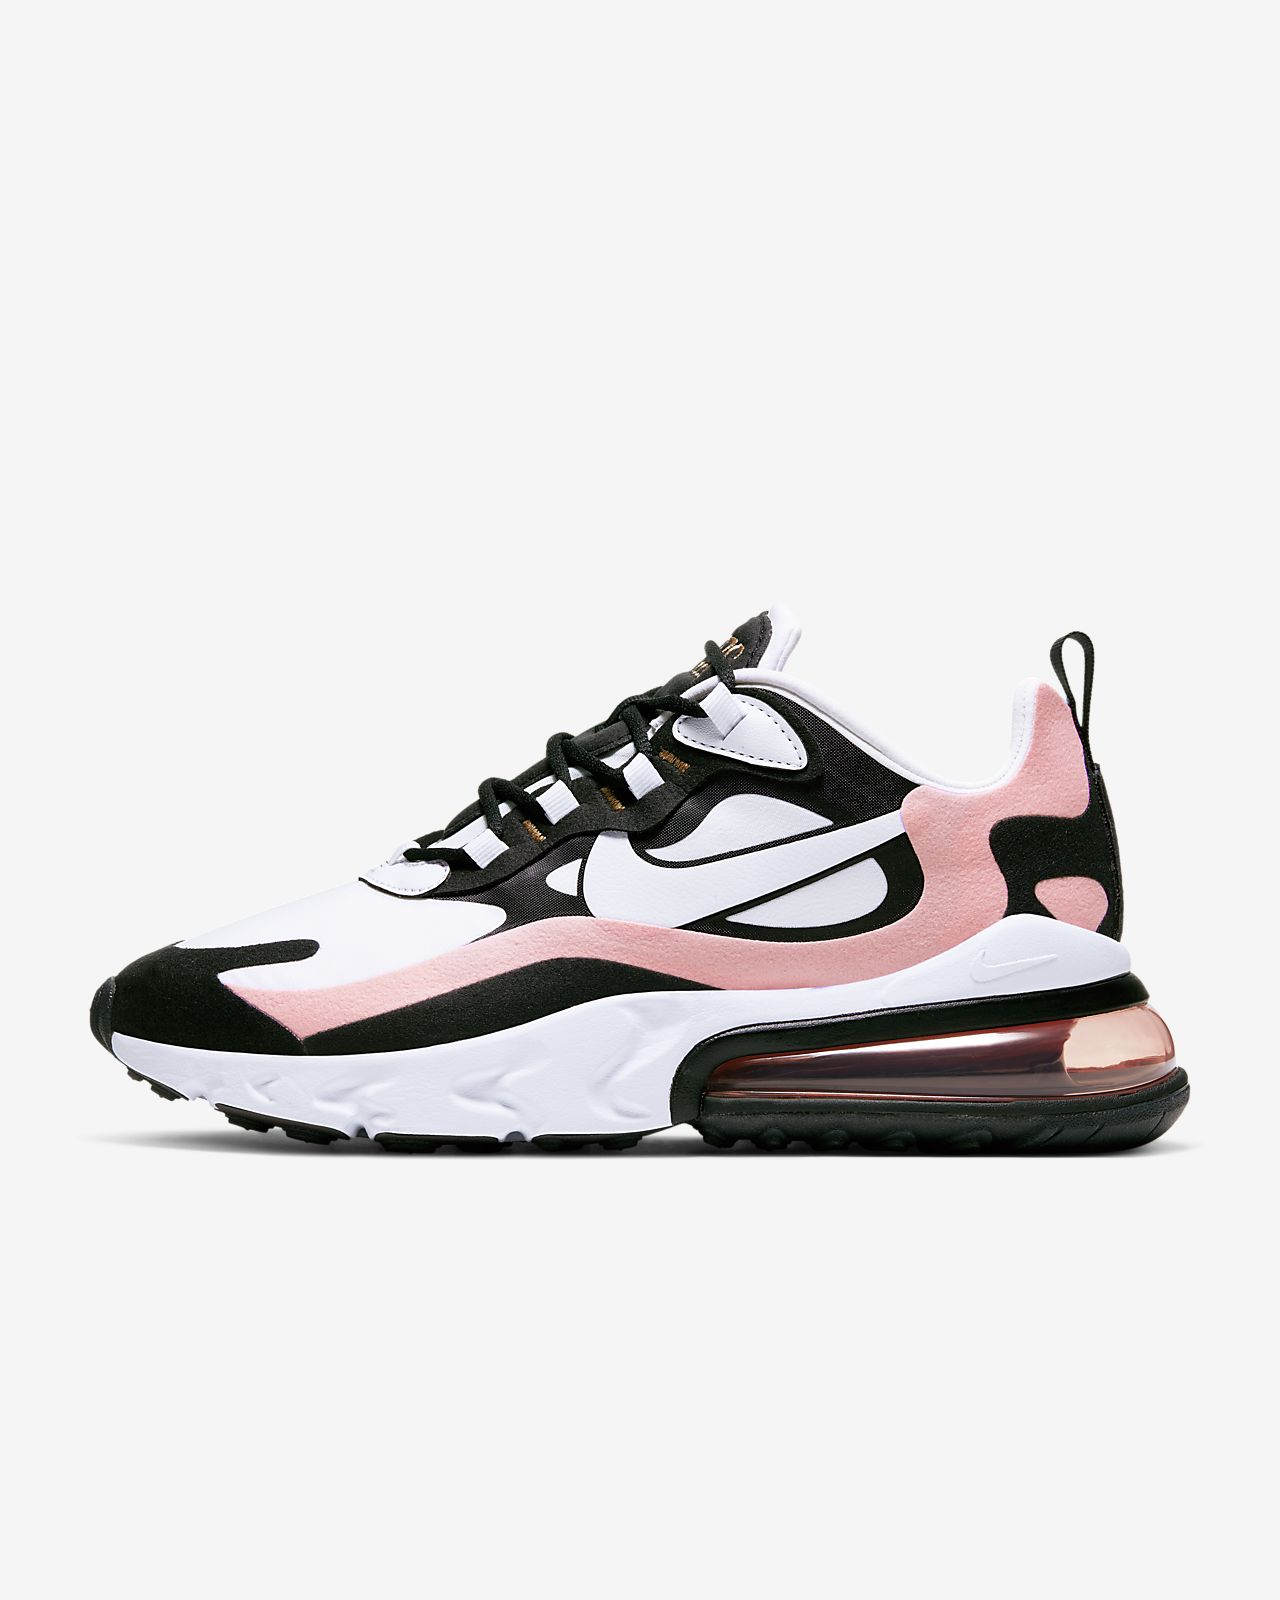 cheaper incredible prices incredible prices Chaussure Nike Air Max 270 React pour Femme. Nike BE